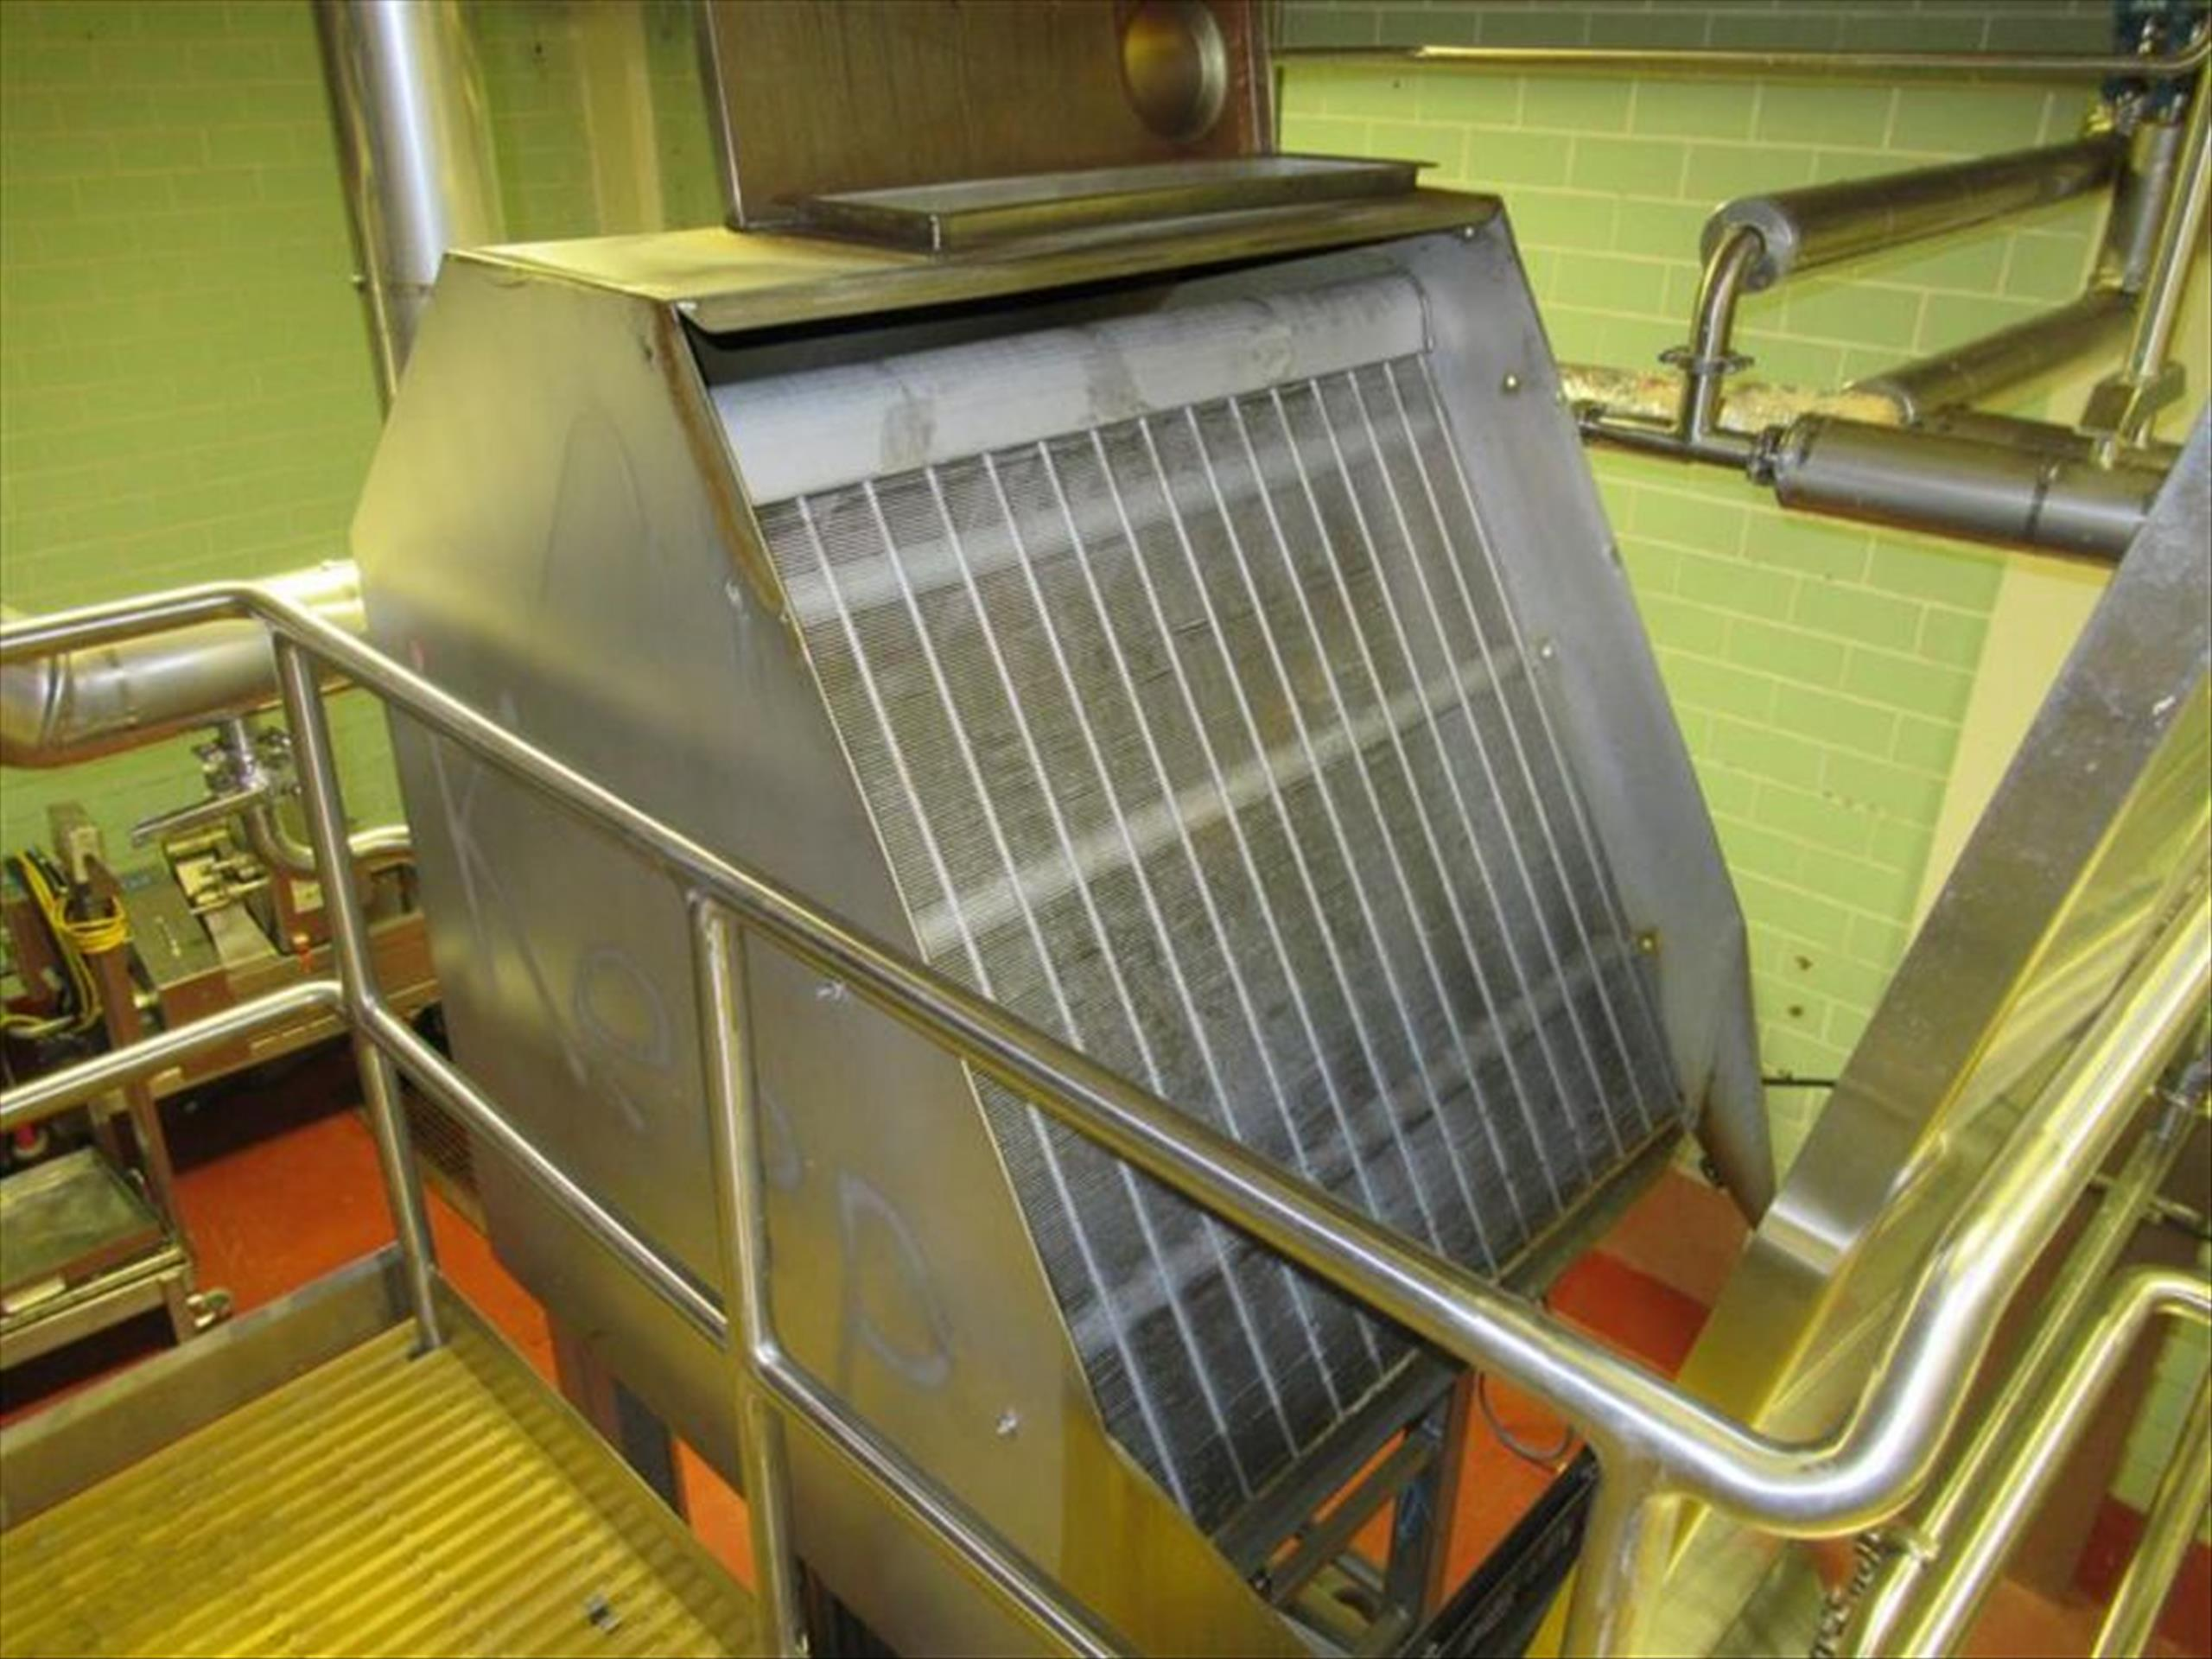 Andritz hydrosieve mod. no. 5 54 2 36 1 approx 48 in w static screen water separator, all